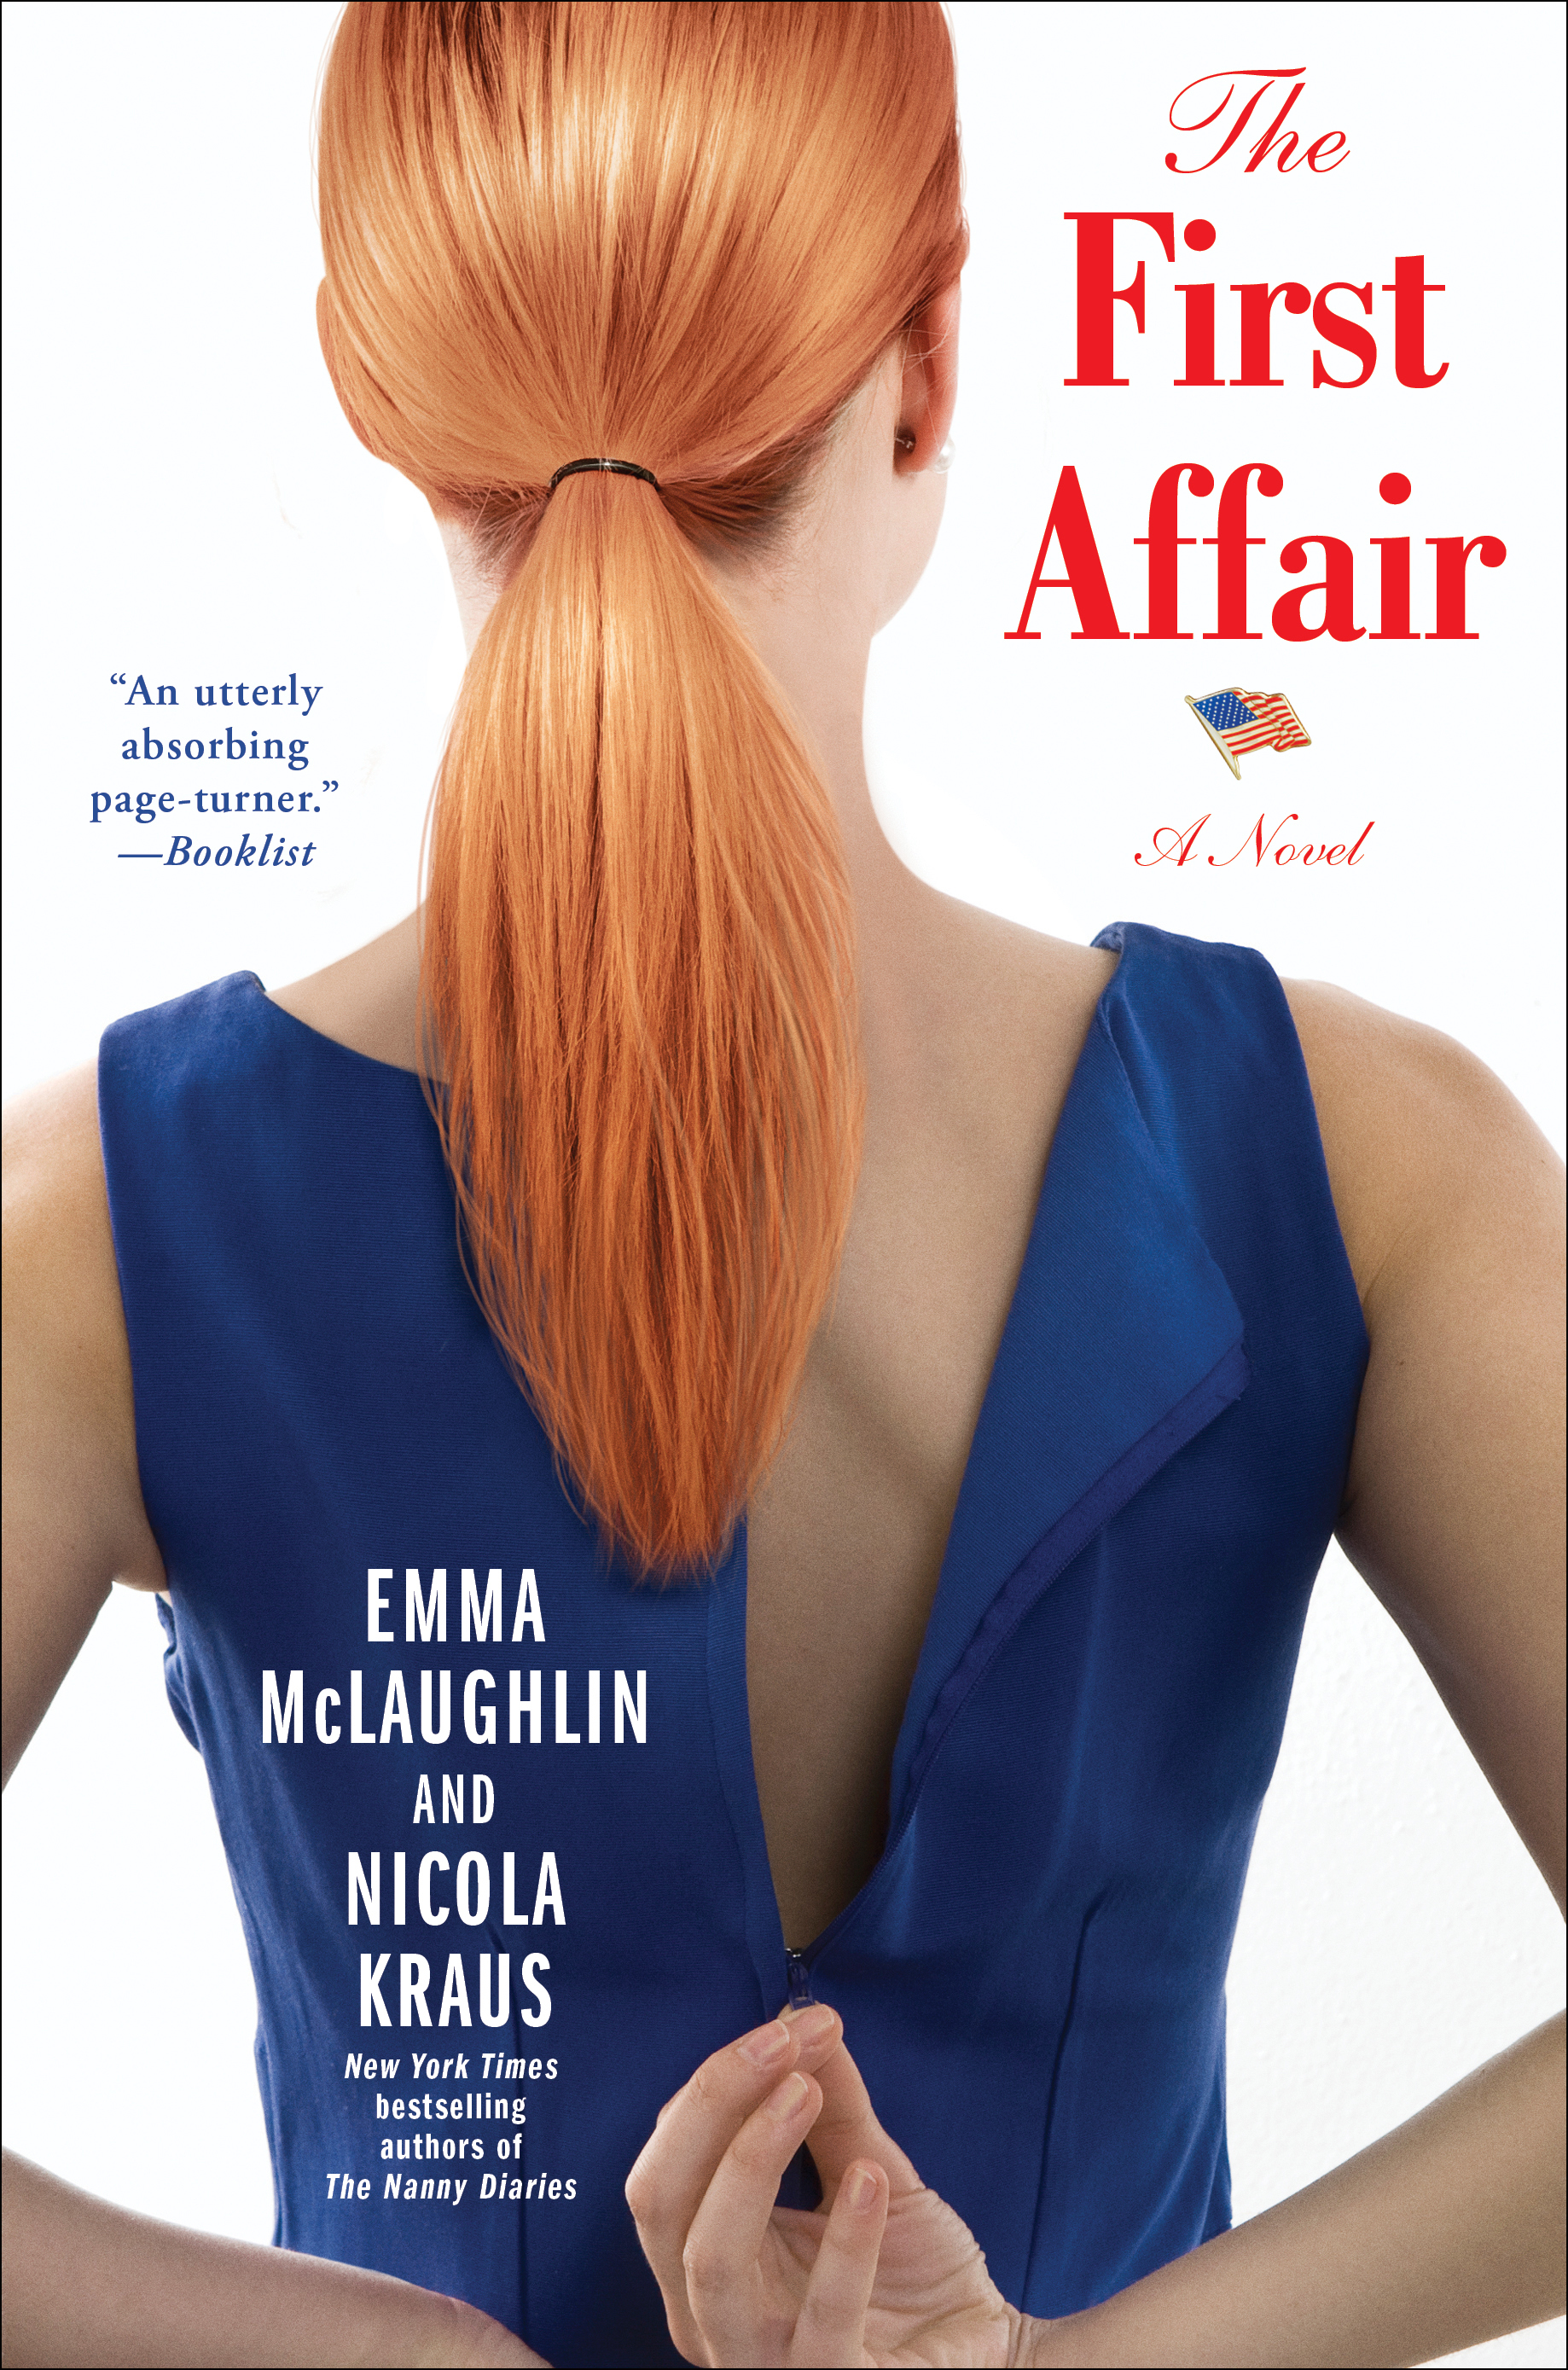 The First Affair by Emma McLaughlin and Nicola Kraus